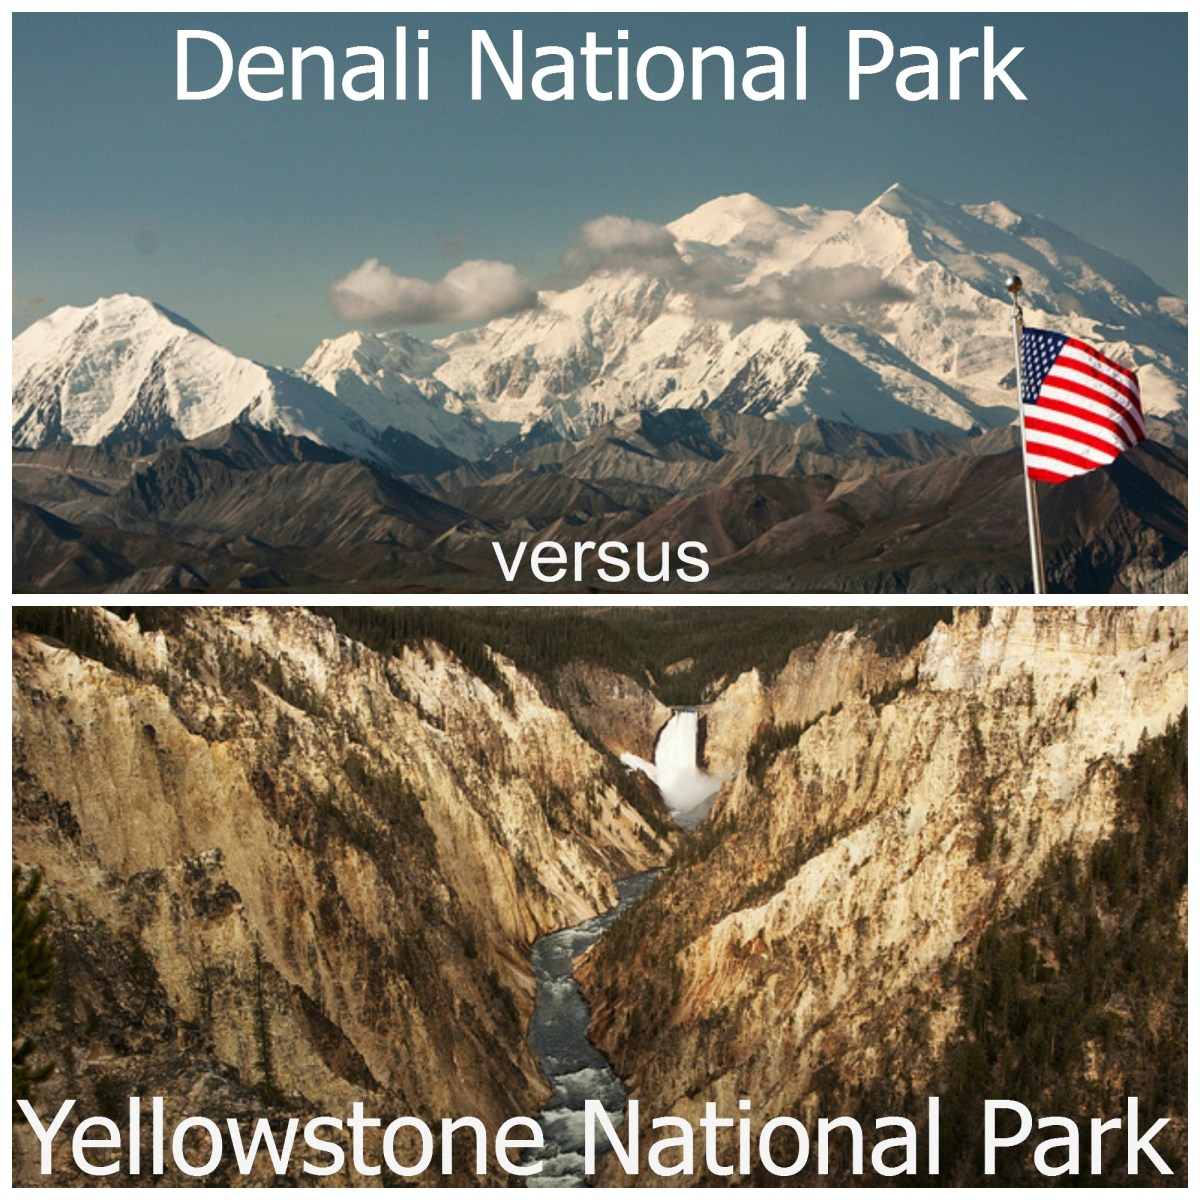 Denali vs Yellowstone National Parks